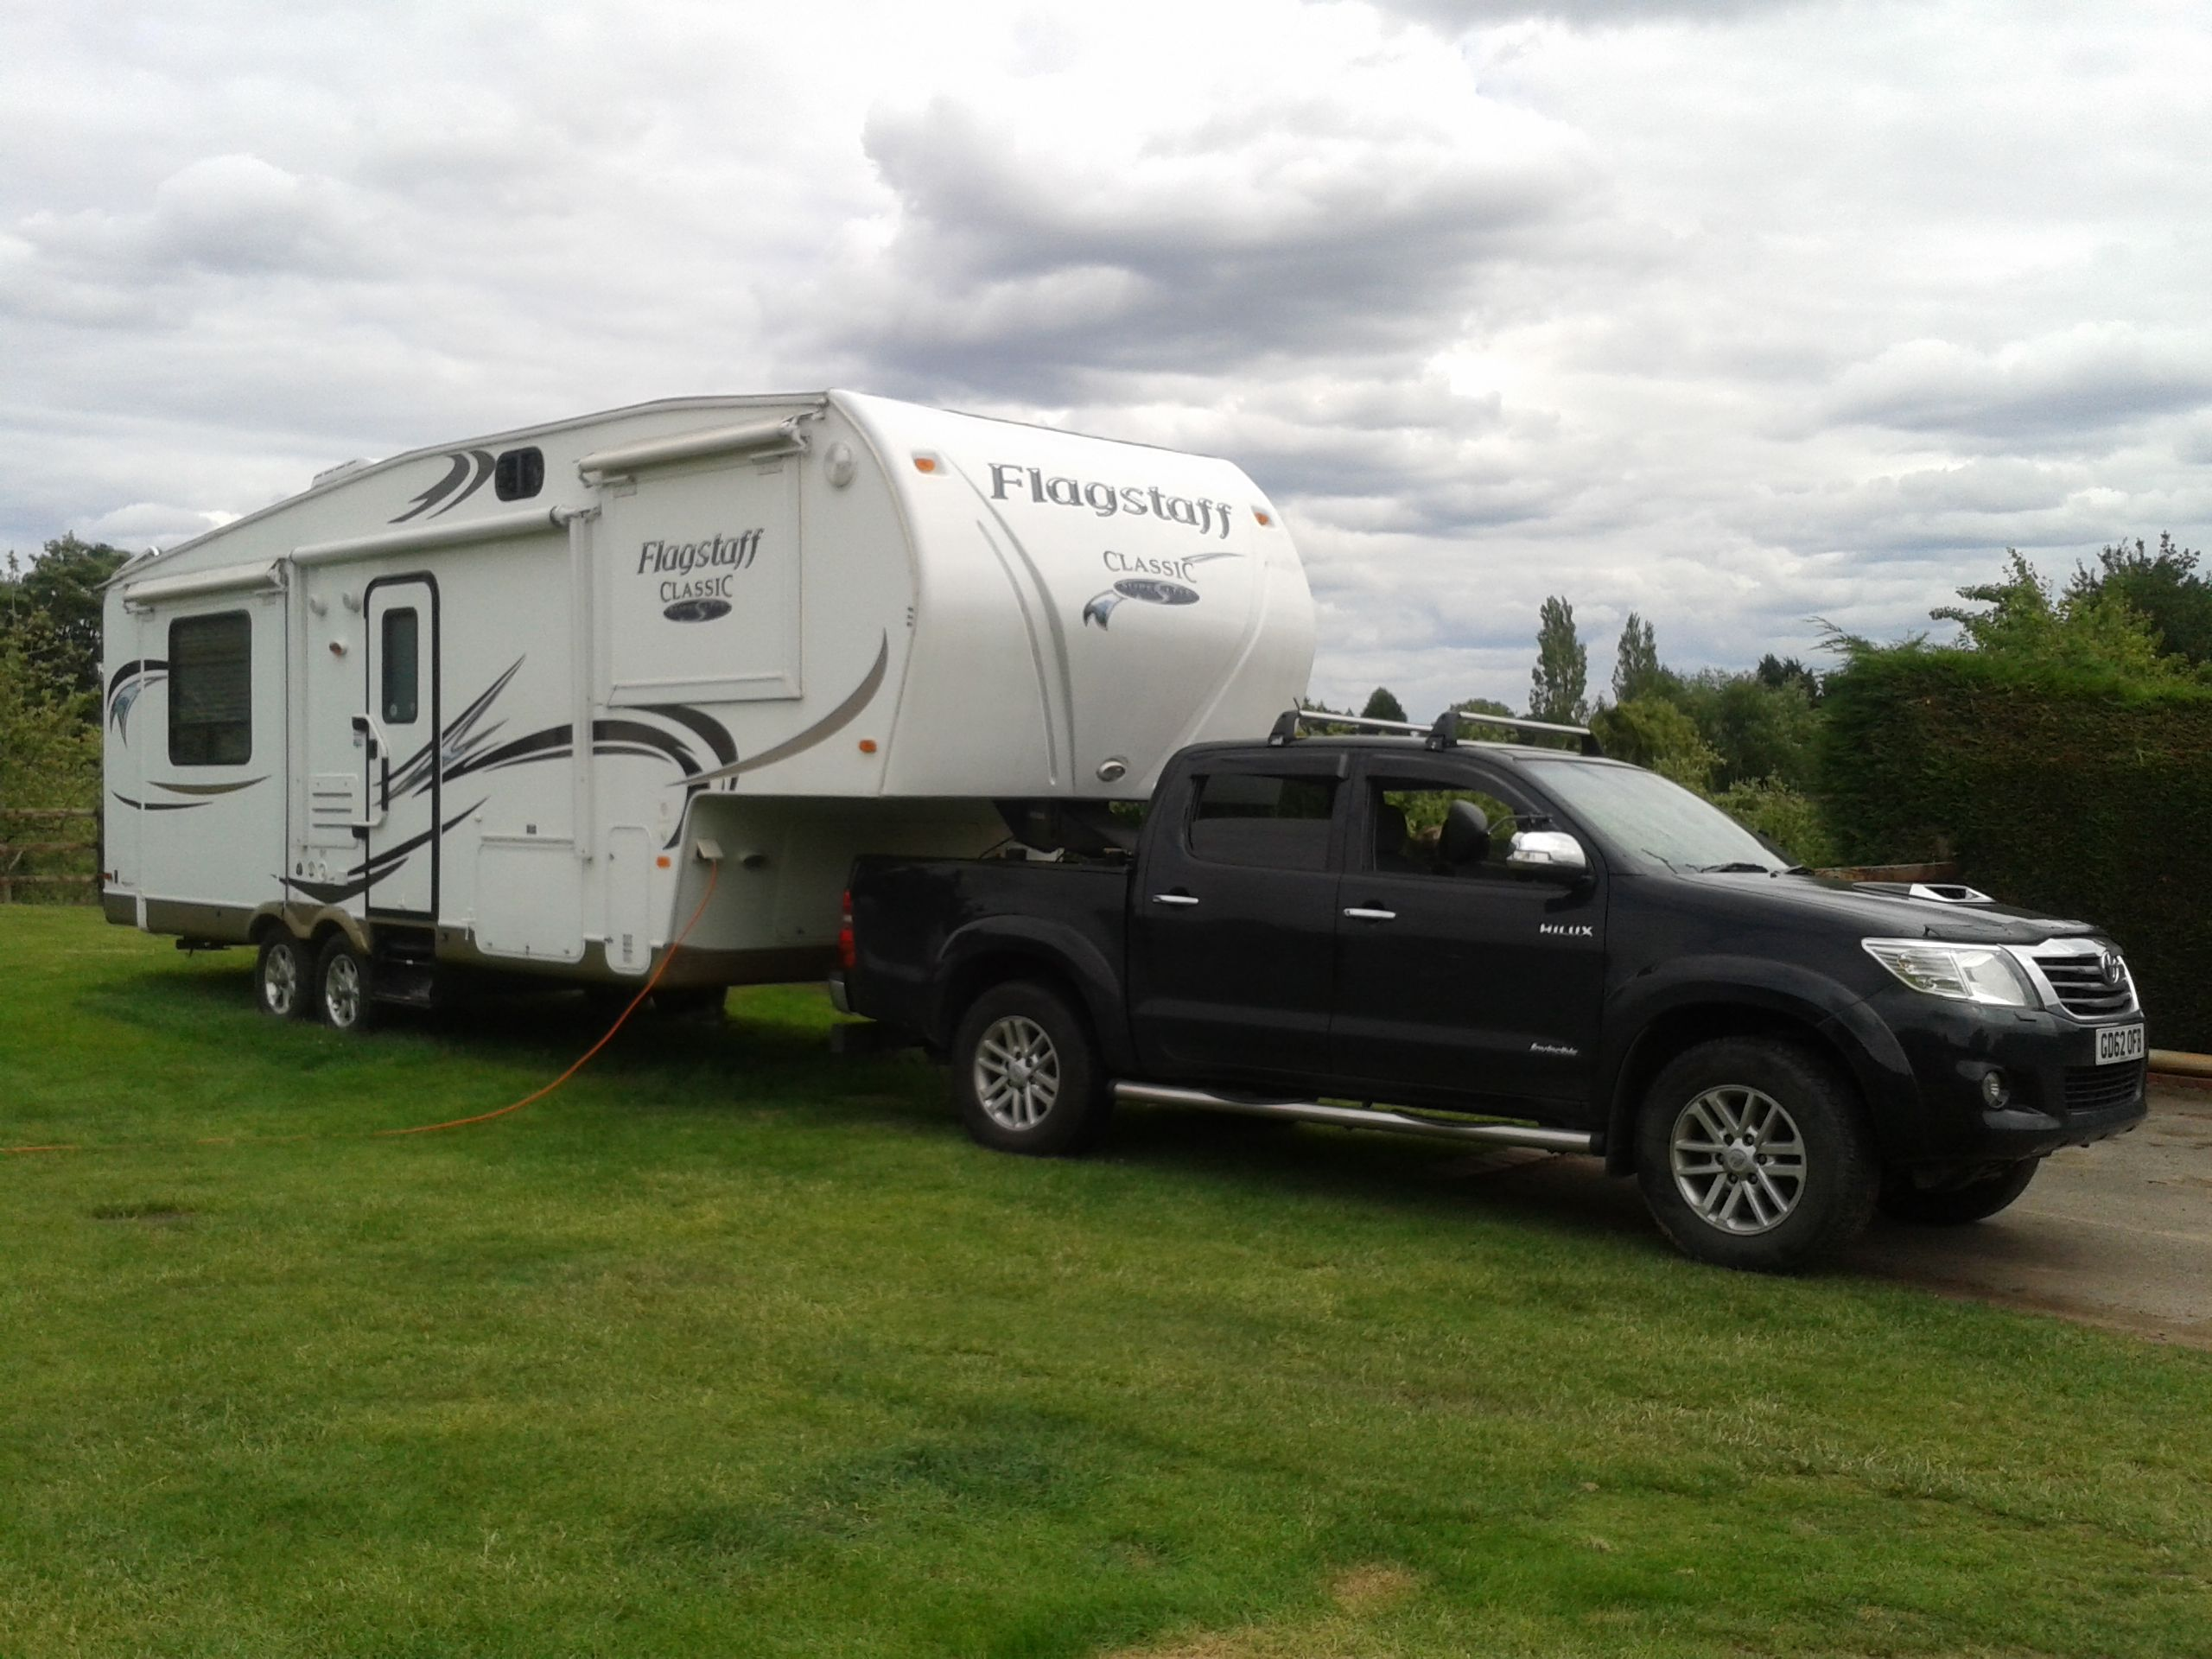 My 2013 hilux upgraded to 3 5 tonne tow capacity pulling our 4 tonne 5th wheel